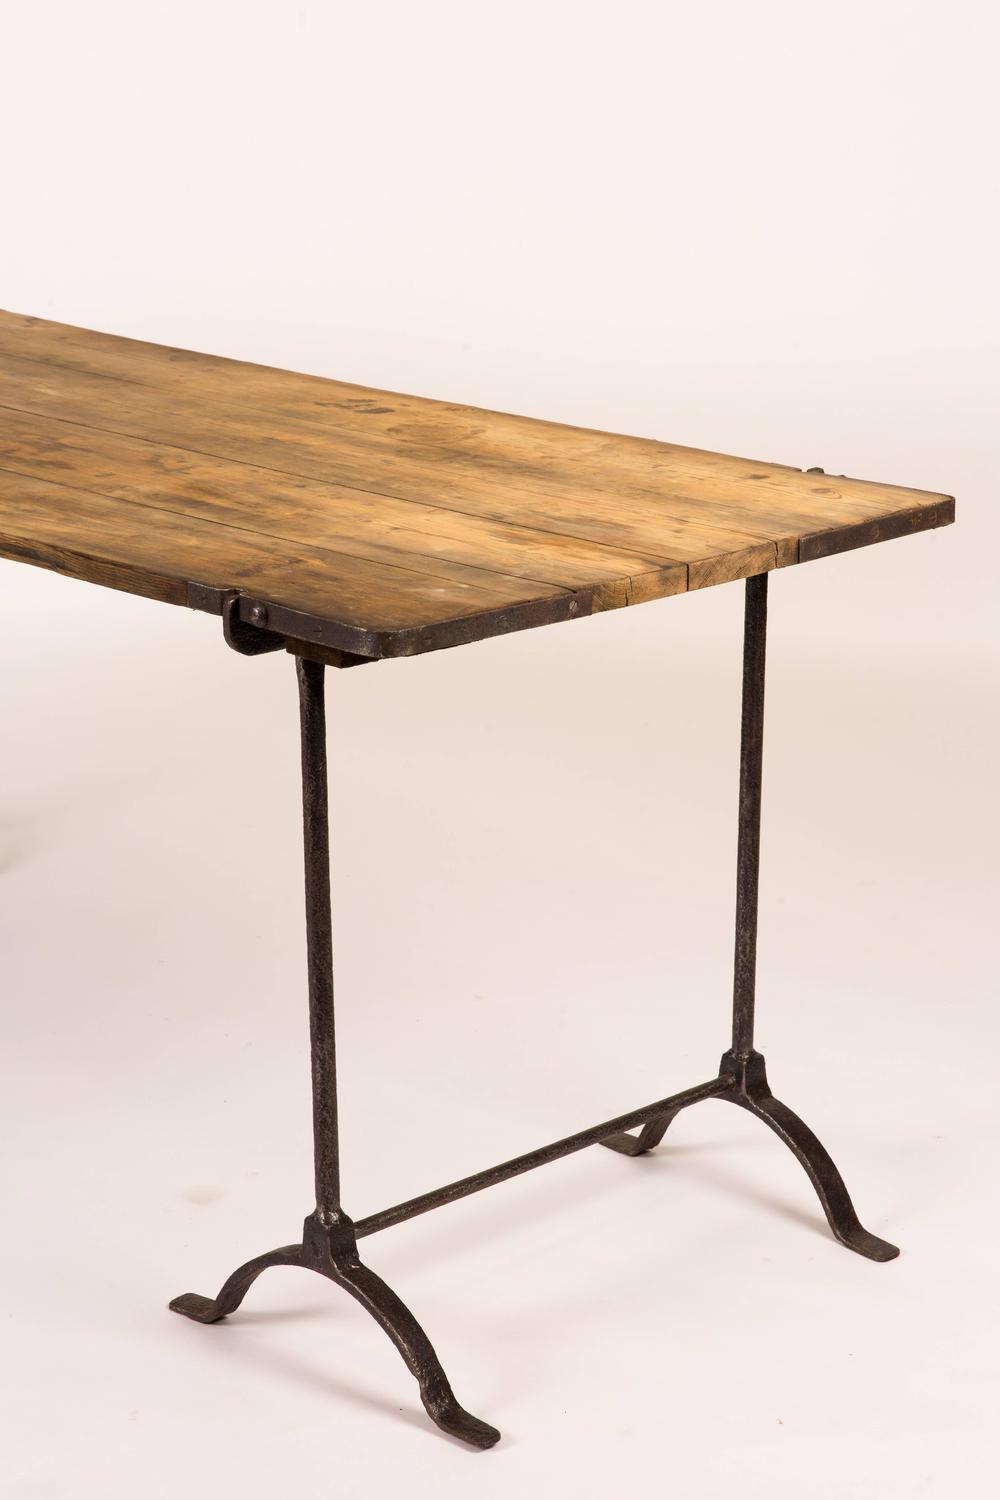 Captivating Oakwood Topped Trestle Table With Iron Legs For Sale At 1stdibs